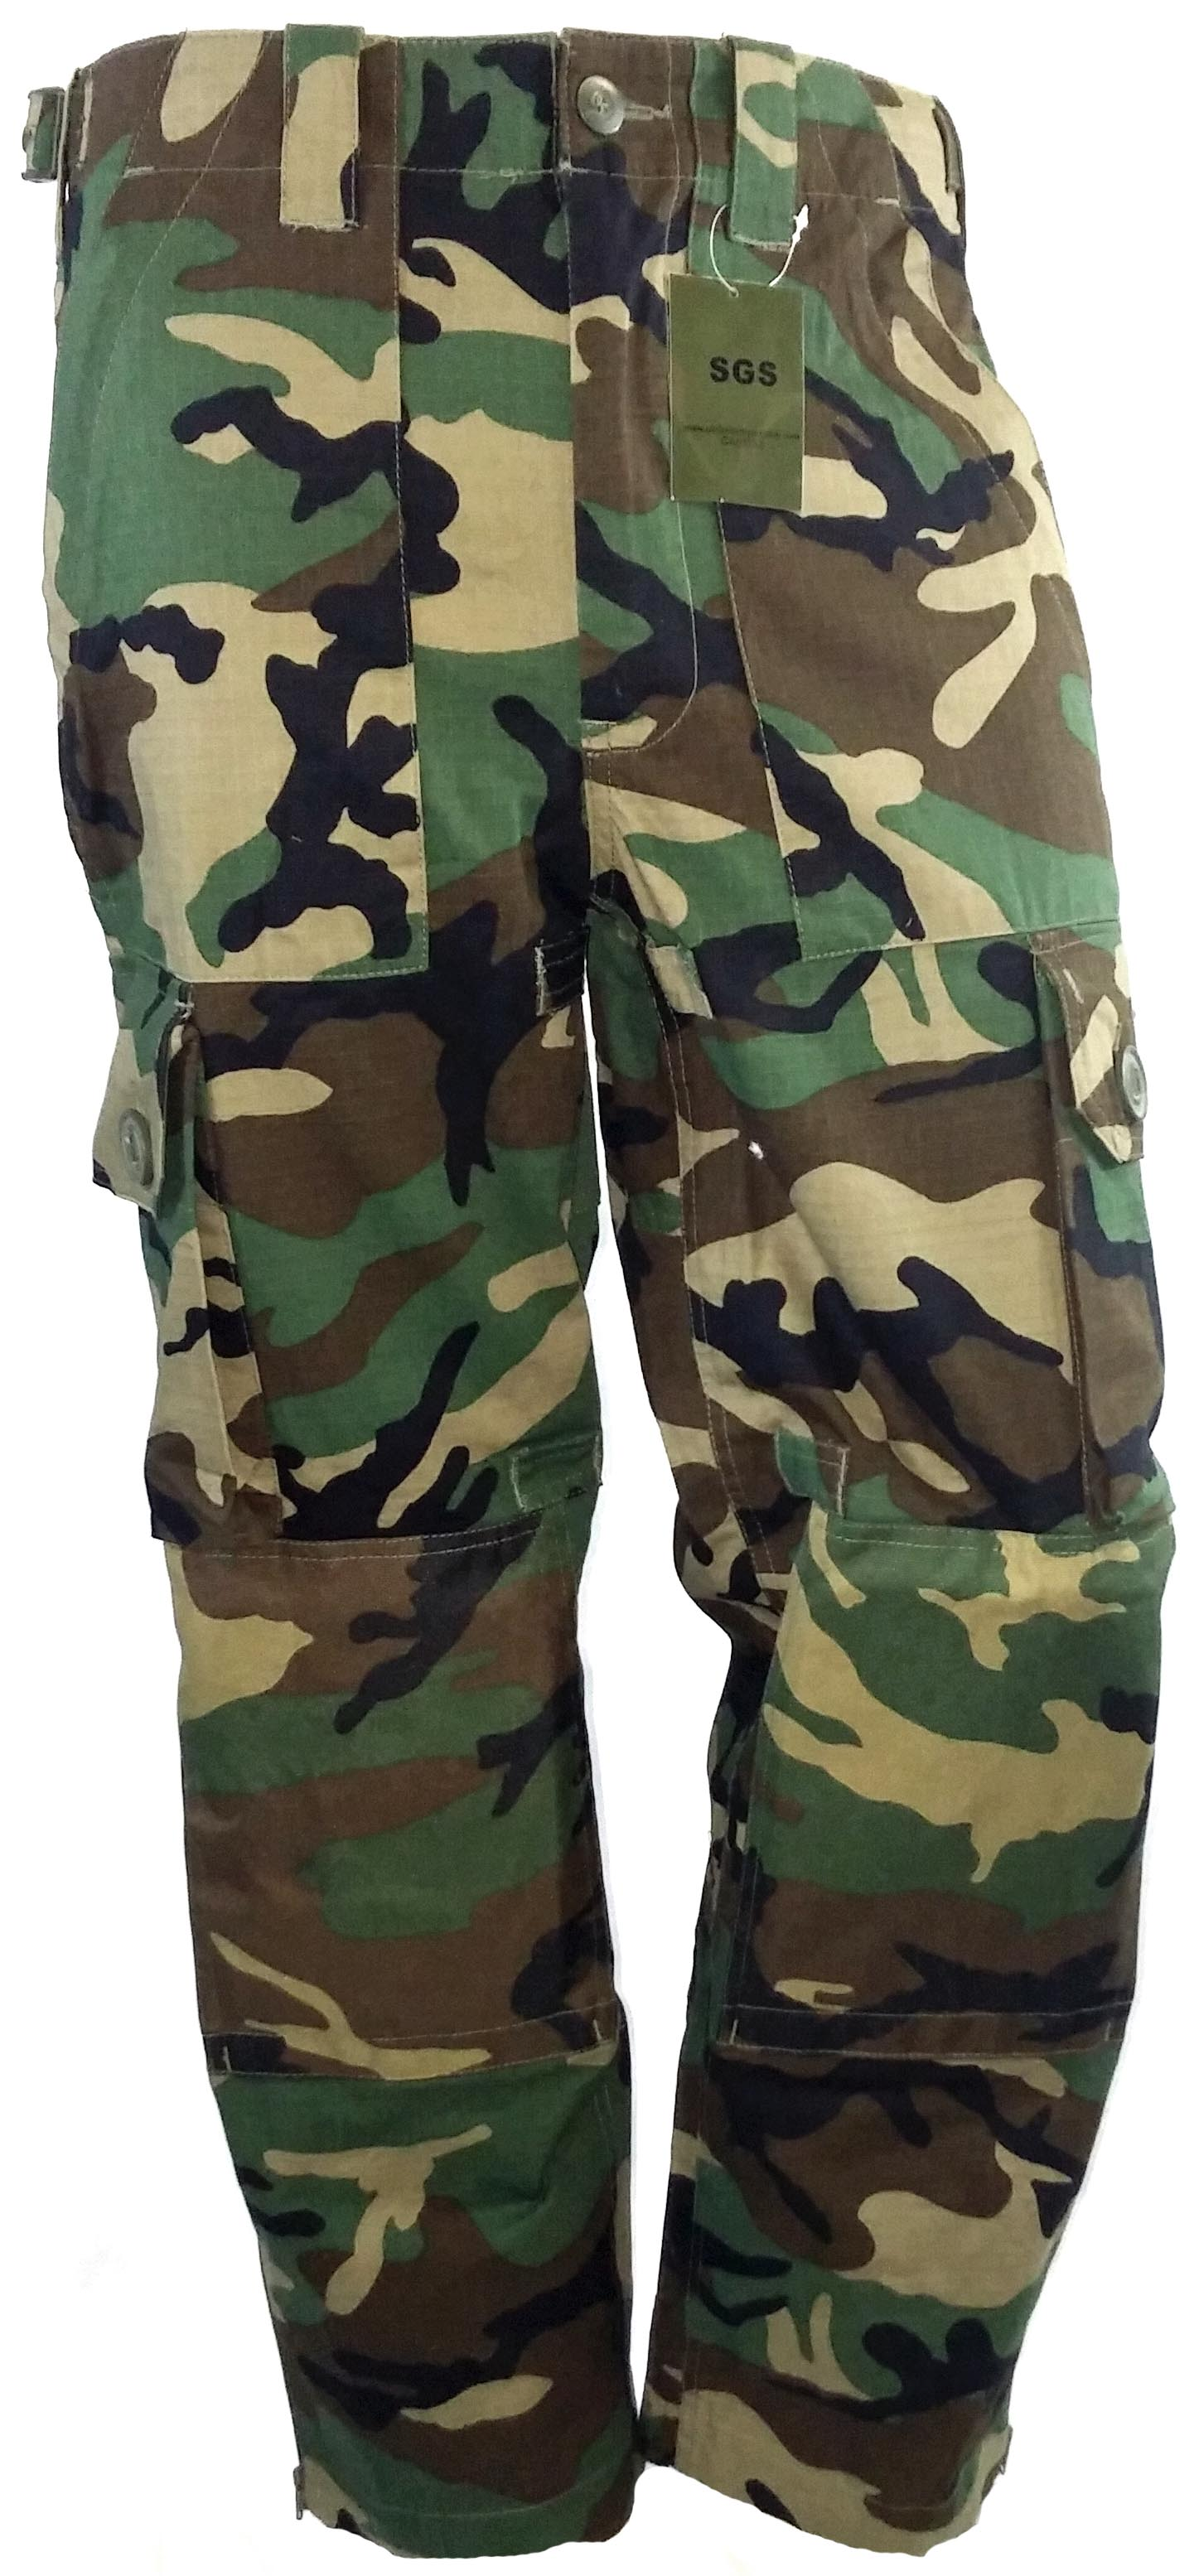 SGS Paratroop pants